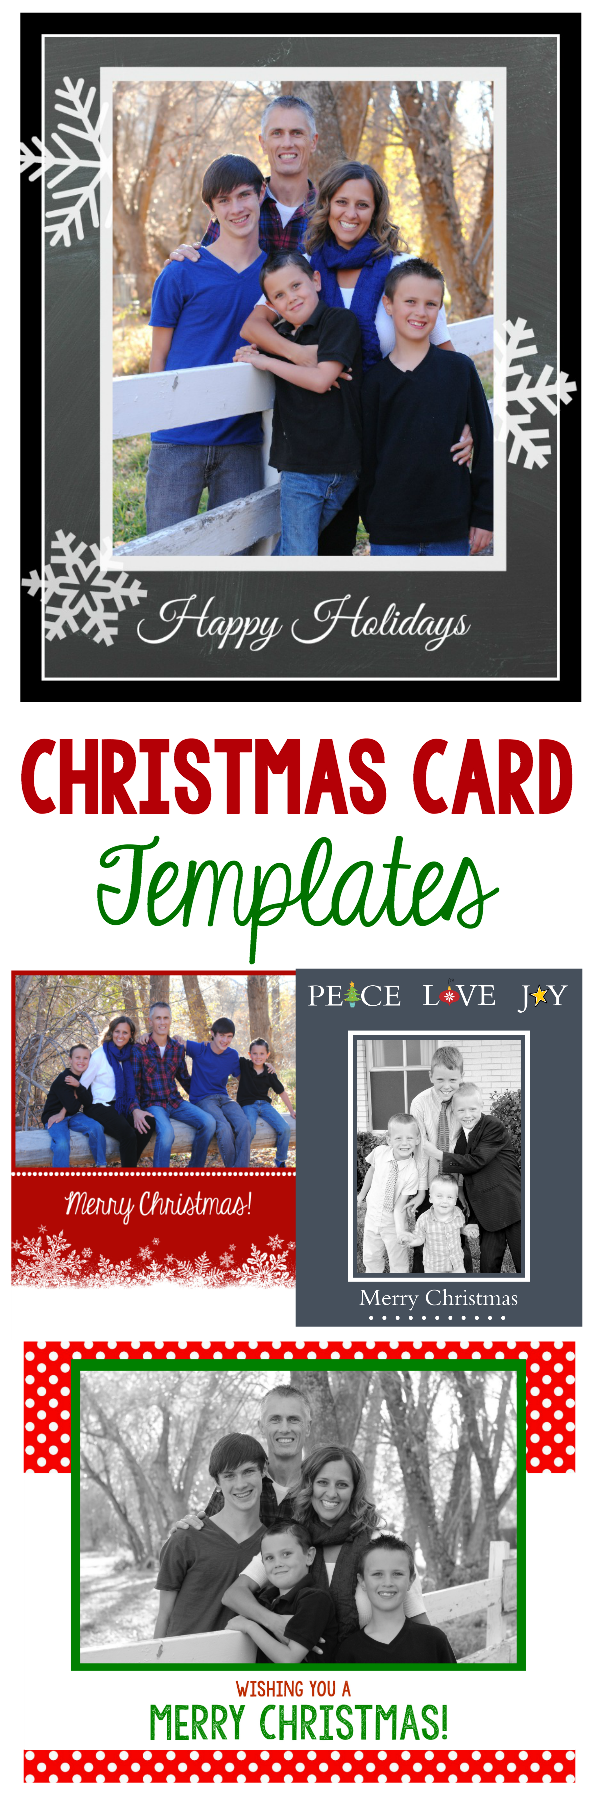 Free Holiday Photo Card Templates Moritz Fine Designs - Free holiday card templates